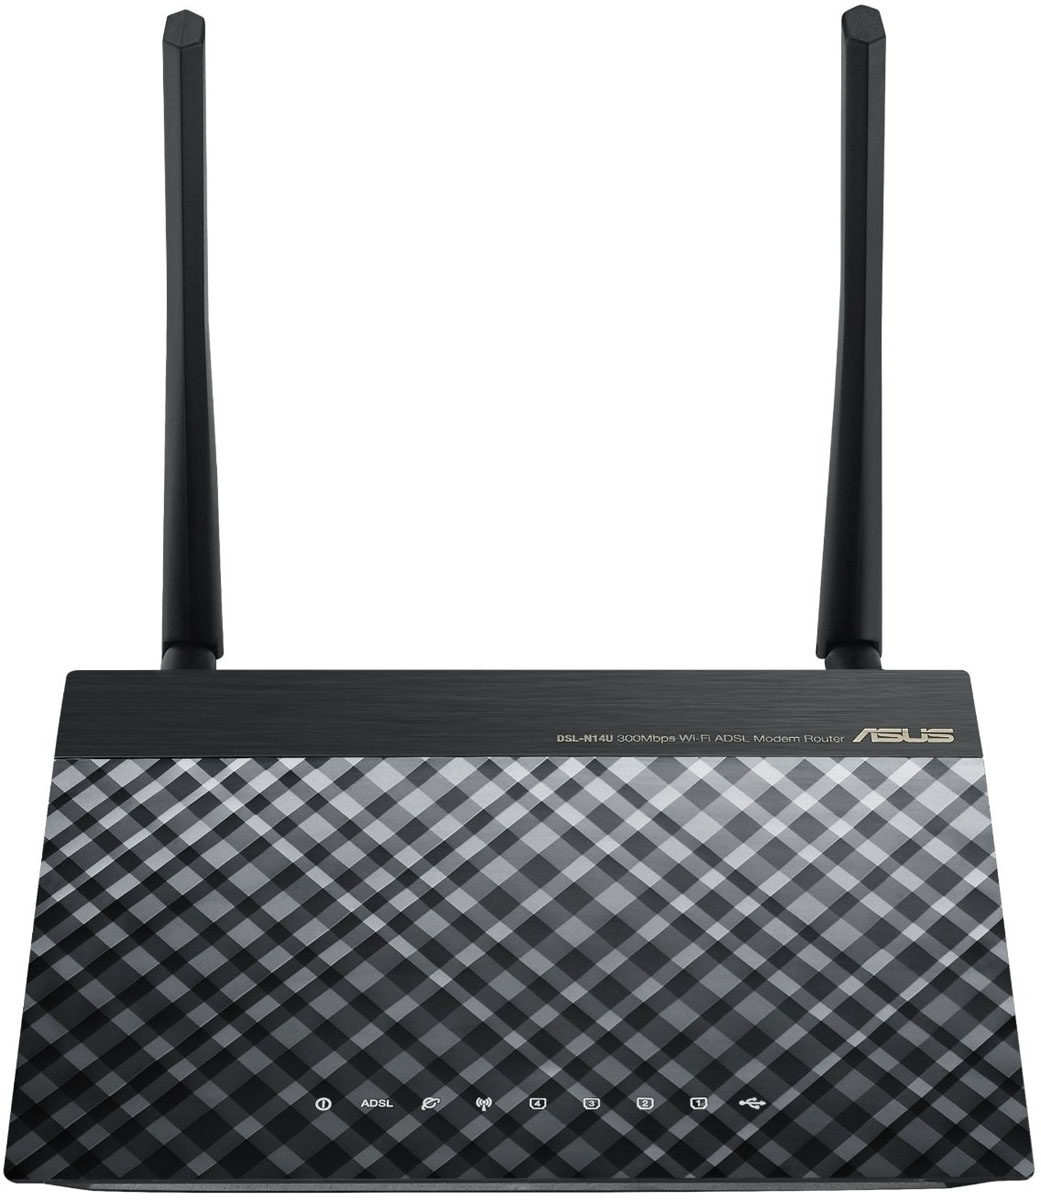 Asus DSL-N14U Wireless N300 - Wi-Fi-ADSL2+ роутер